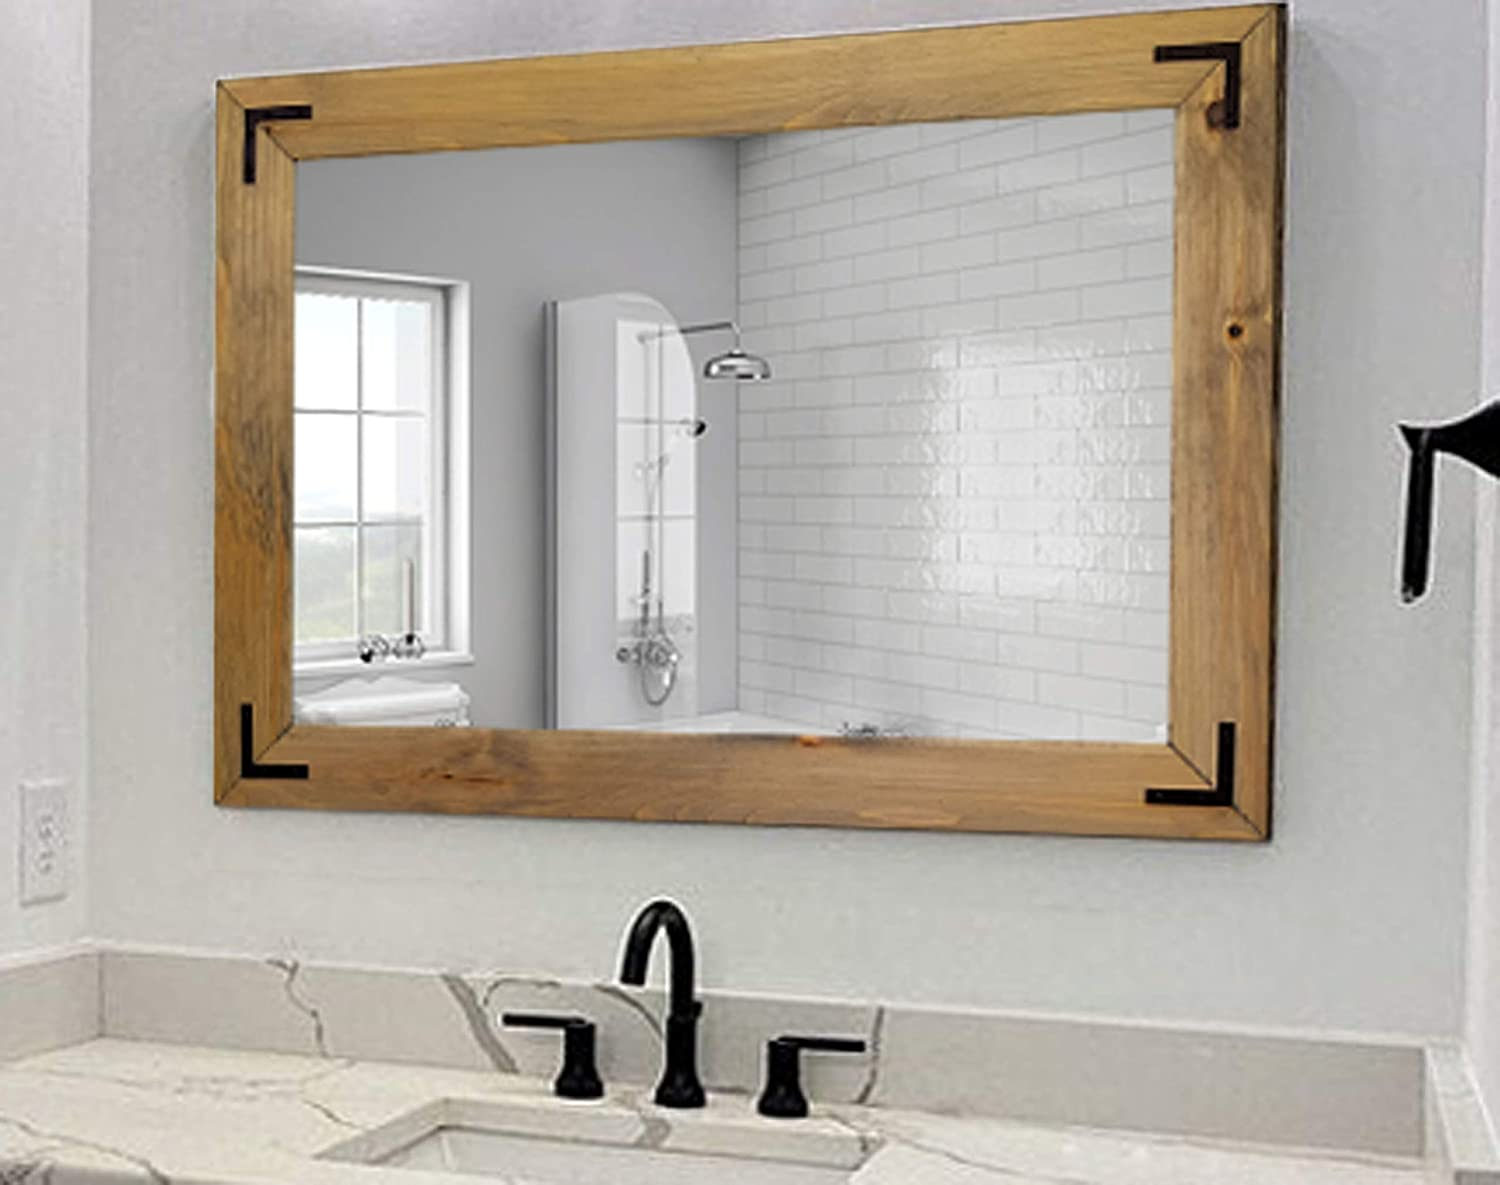 Shiplap Rustic Wood Framed Mirror With Accent Brackets, 20 Stain Colors - Shown In Weathered Oak - Vanity Mirror, Bathroom Mirror, Beach House Decor, Full Length Mirror, Wall Mirror, Large Mirror